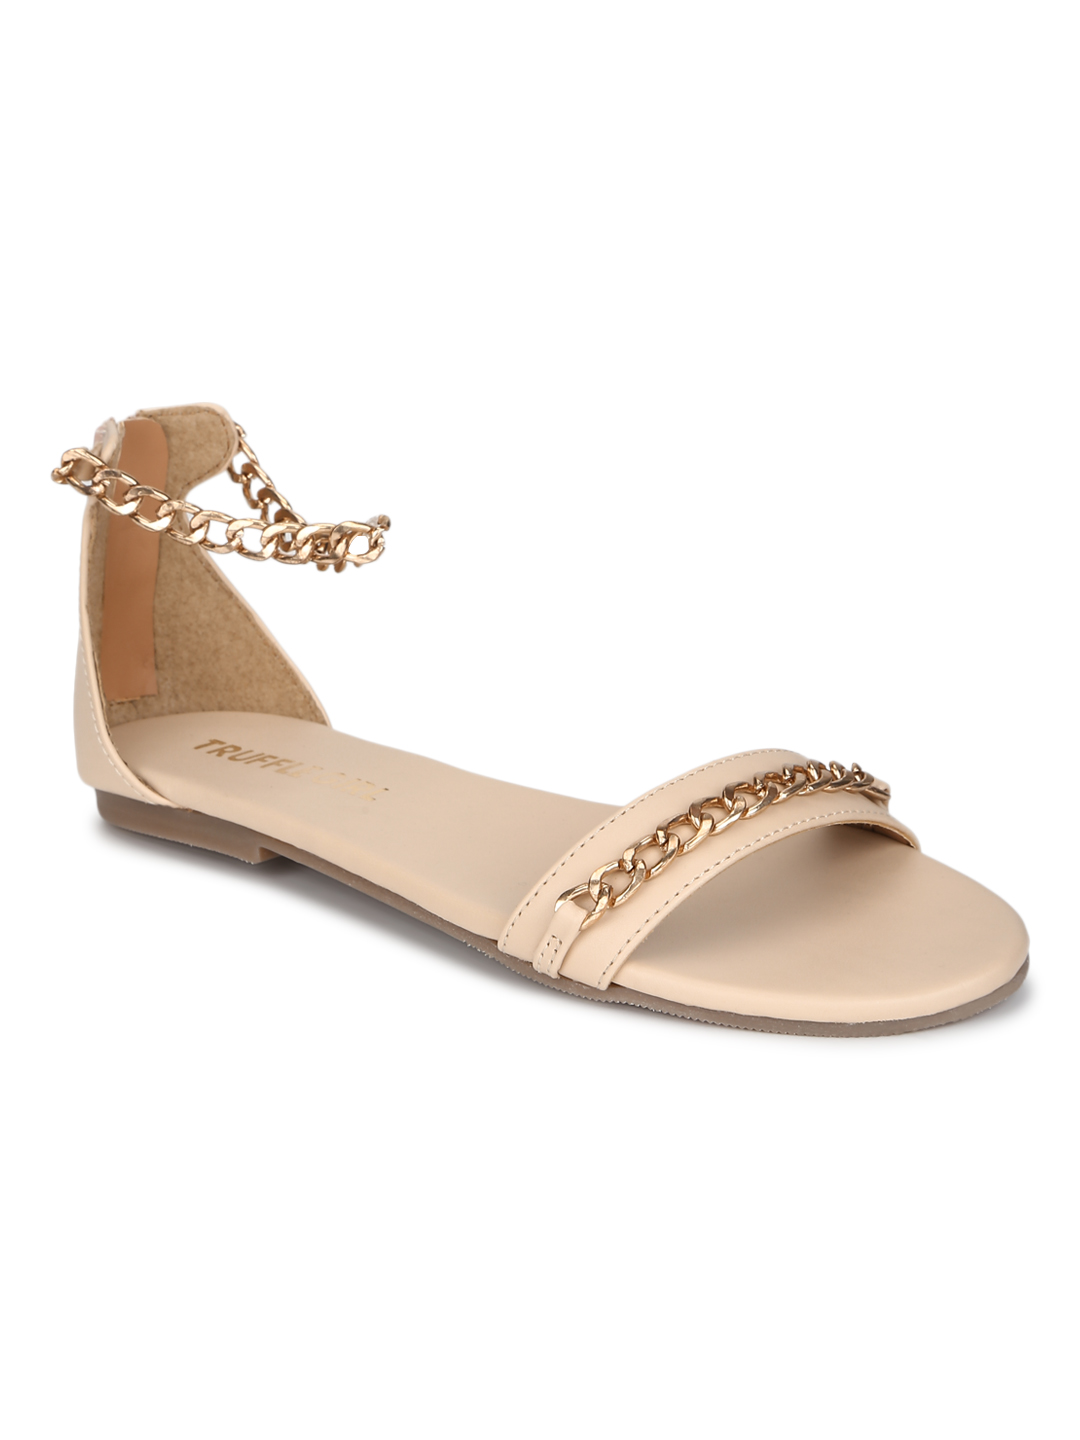 Truffle Collection | Truffle Collection Nude PU Gold Chained Sandals